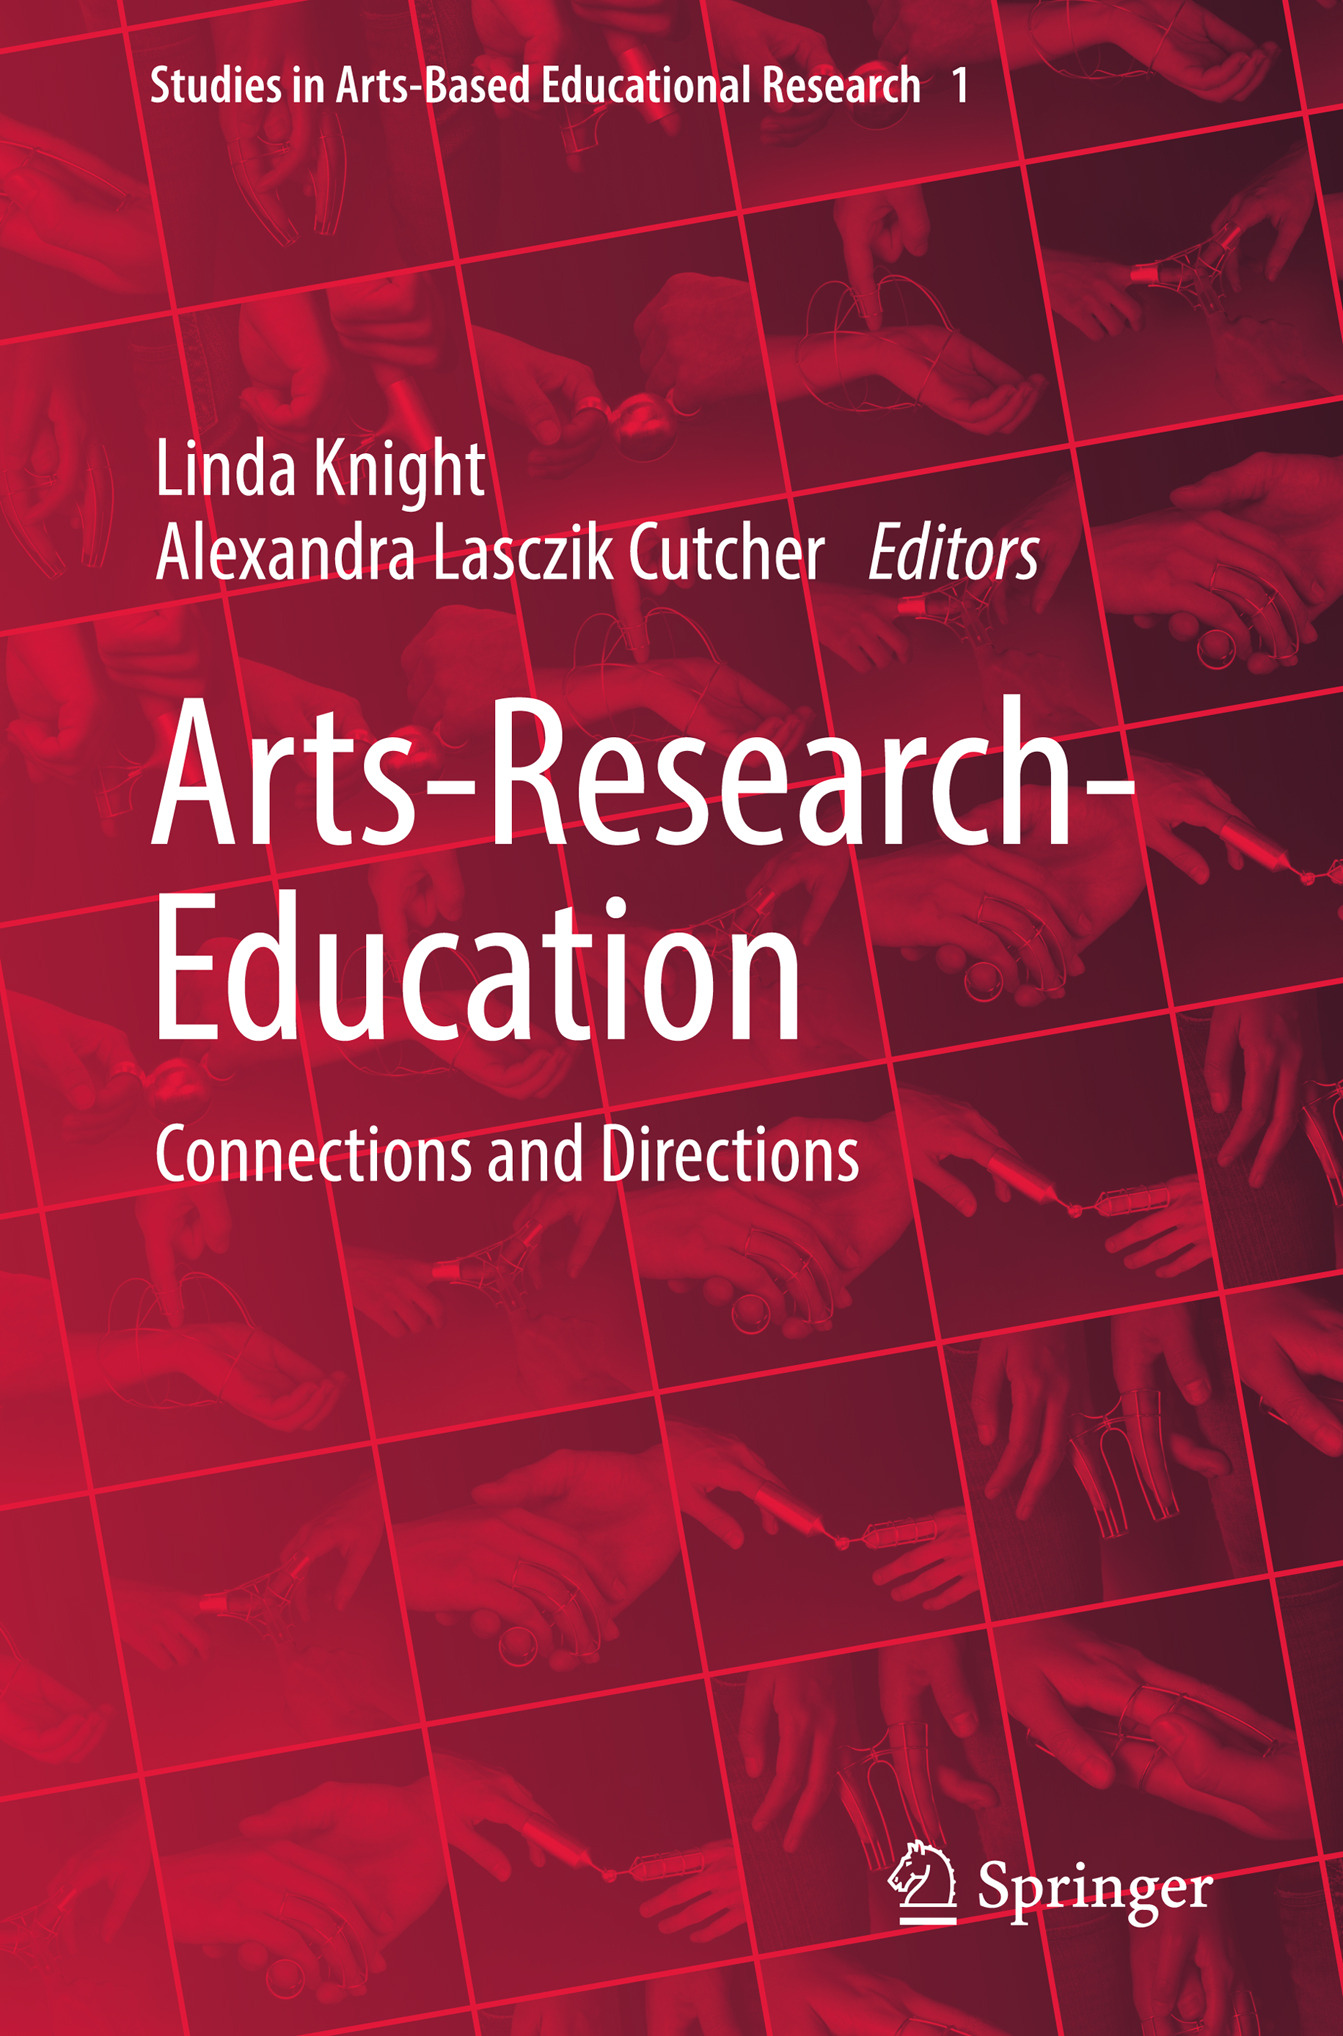 Cutcher, Alexandra Lasczik - Arts-Research-Education, ebook